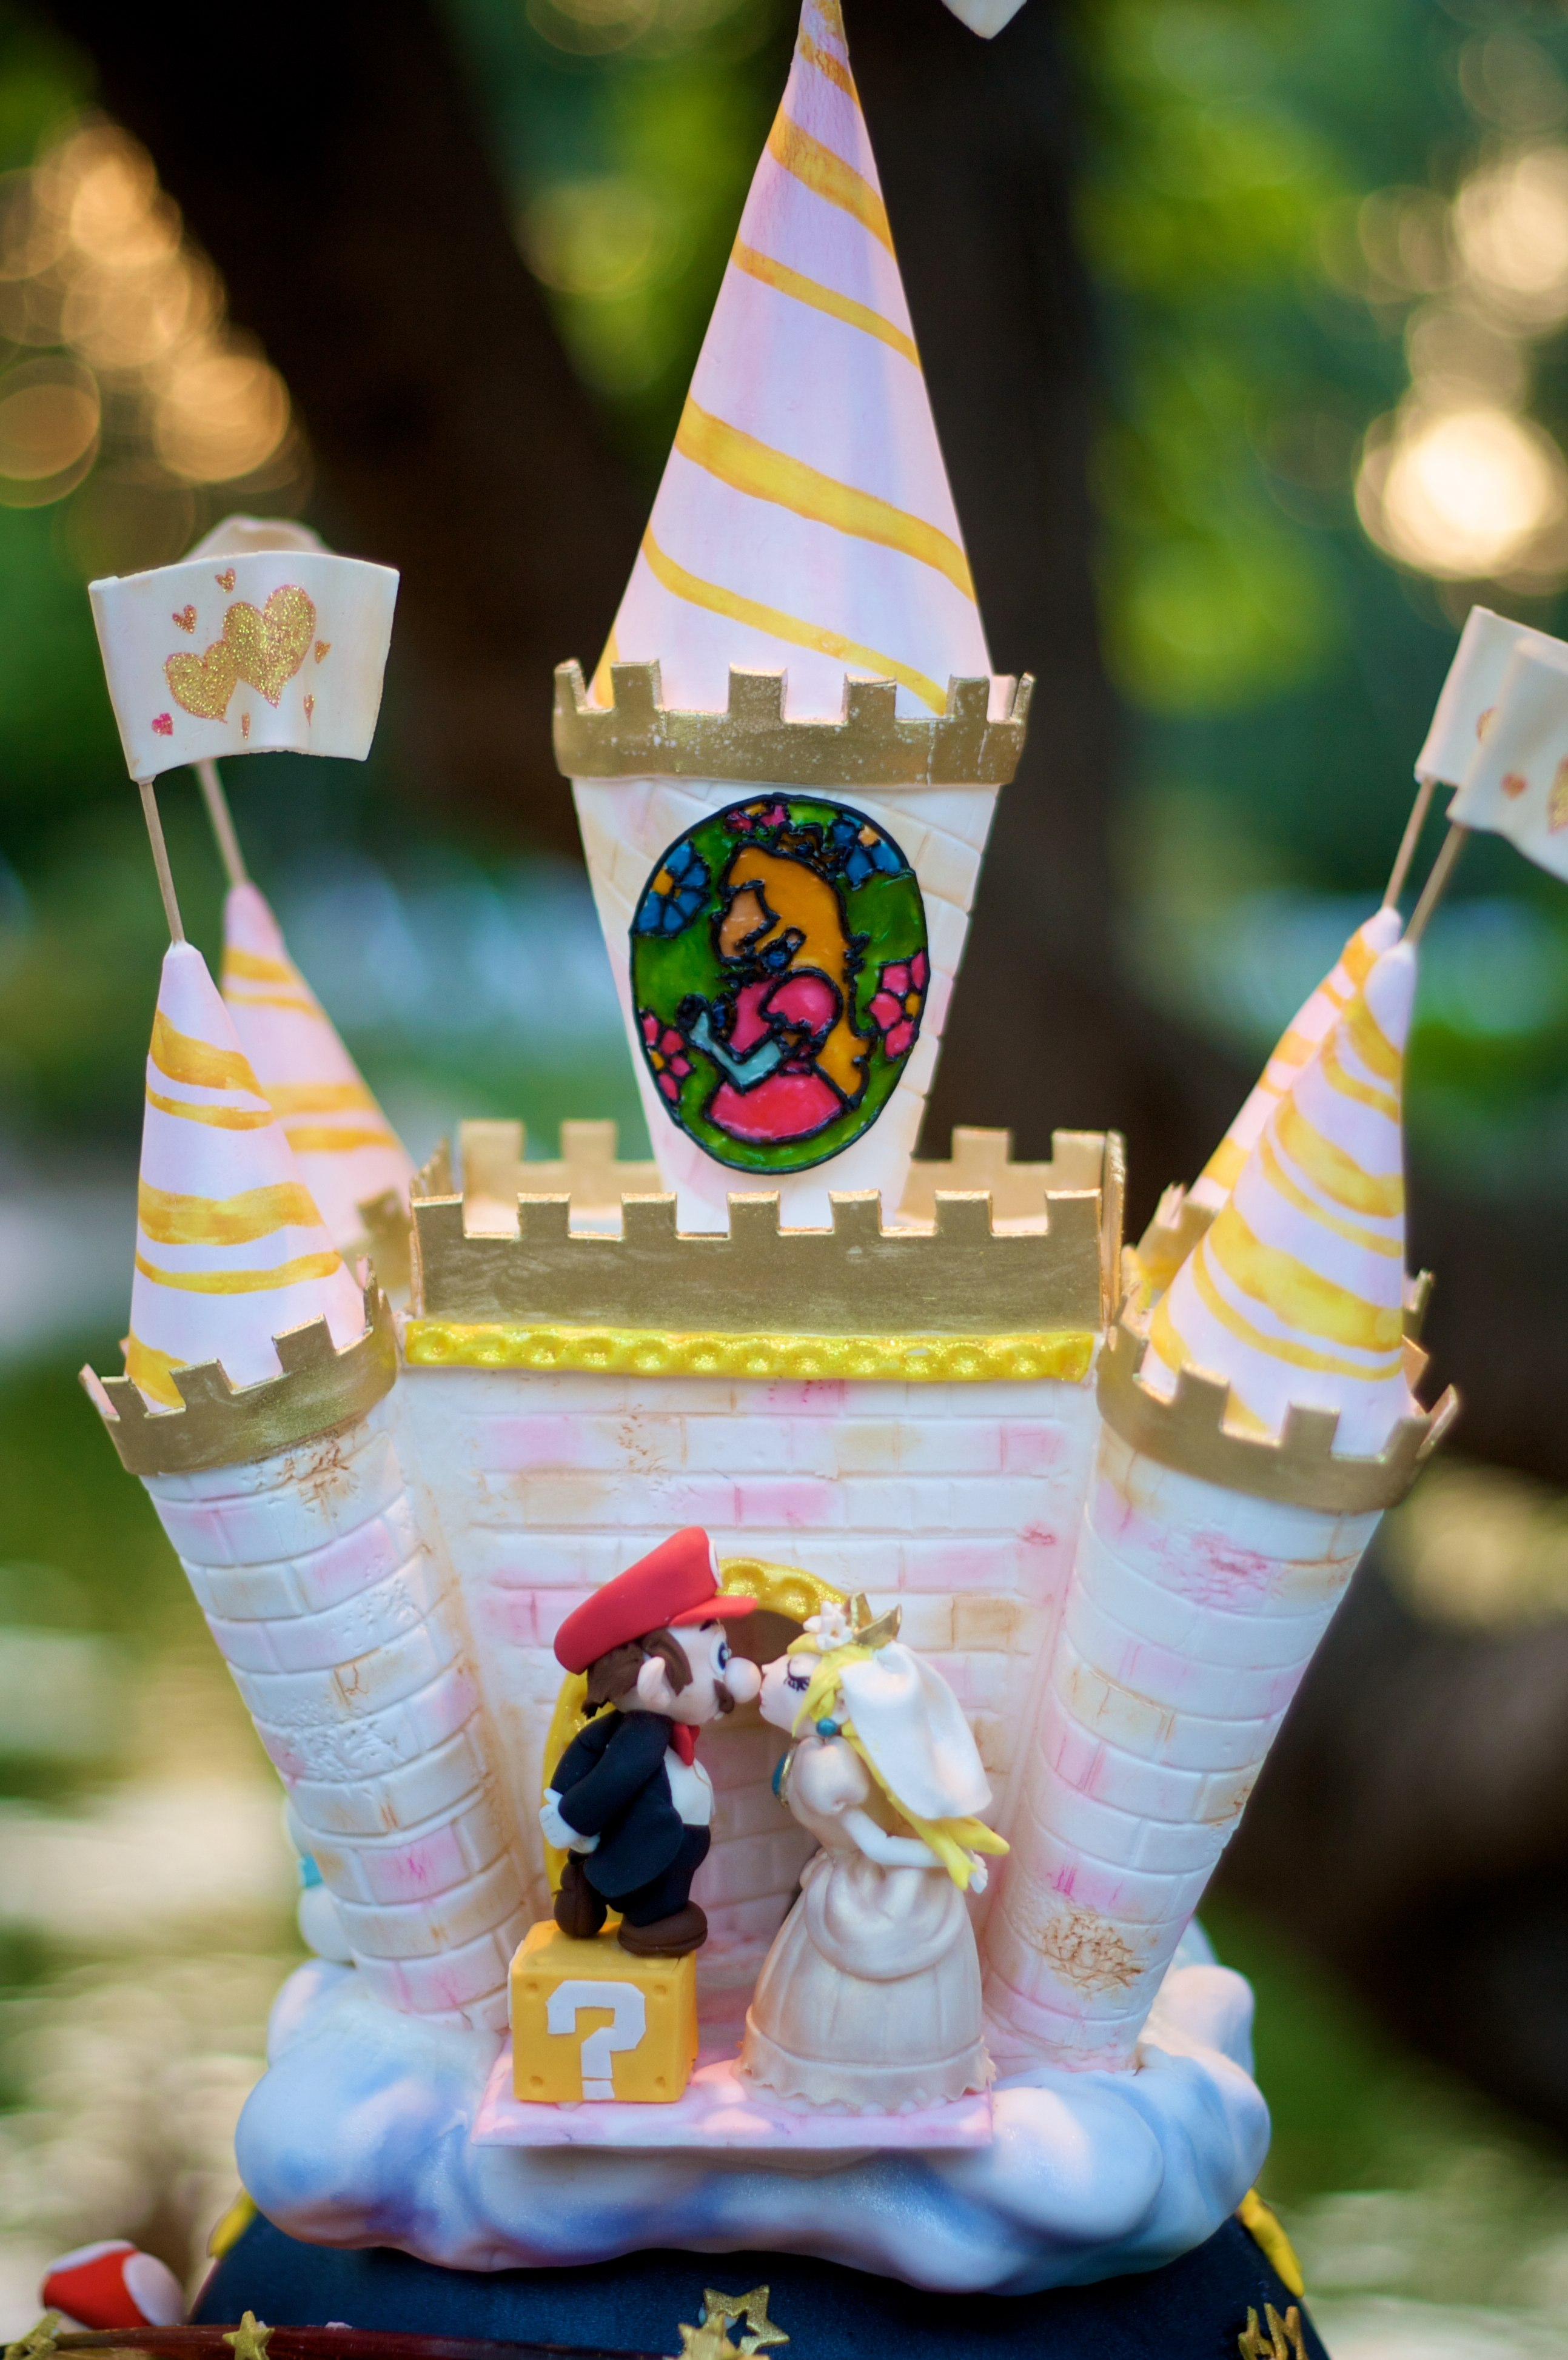 This is the Best Video Game Wedding Cake I ve Ever Seen